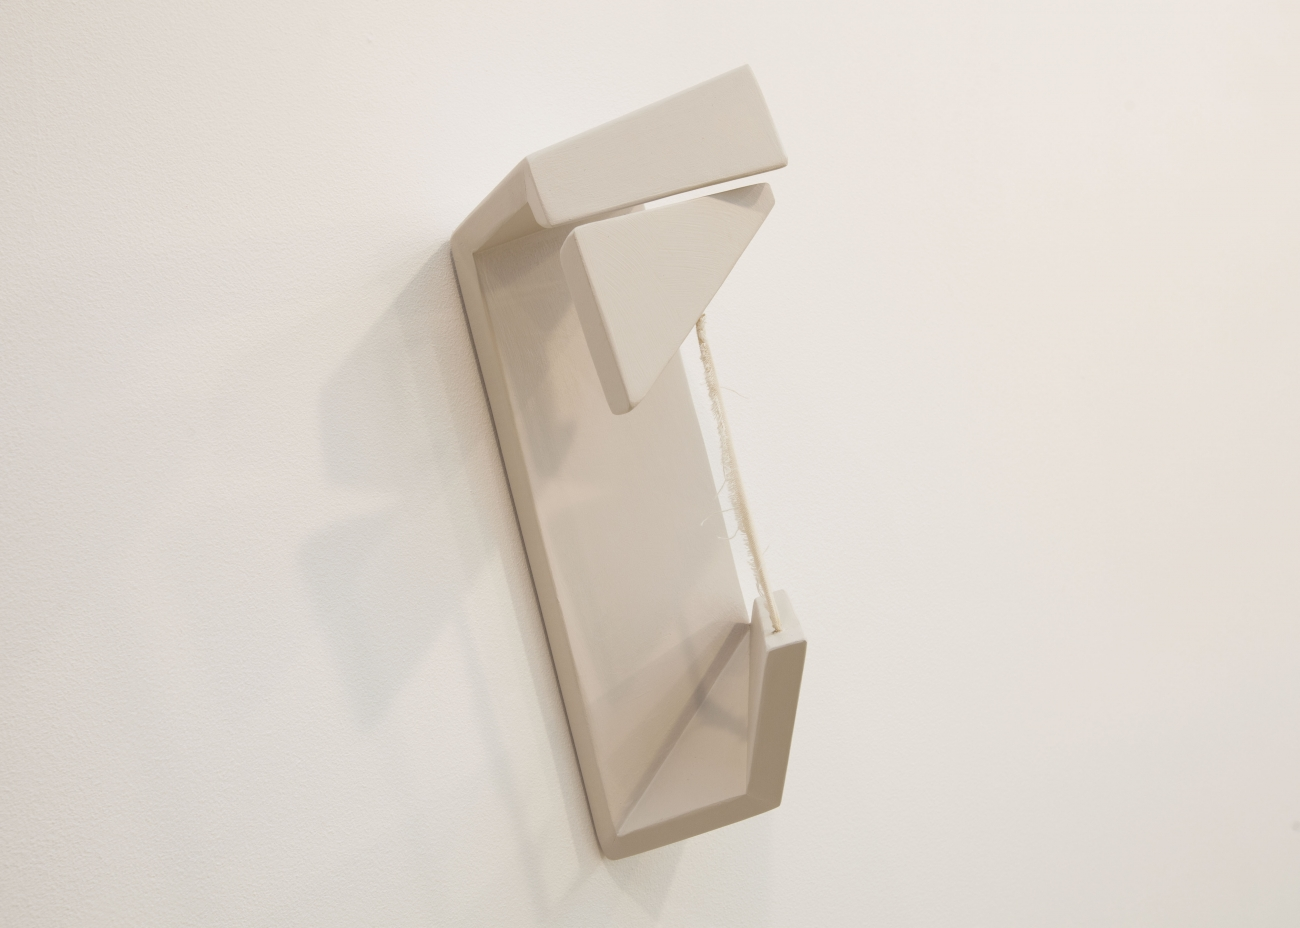 wall-mounted sculpture by Meghan Grubb